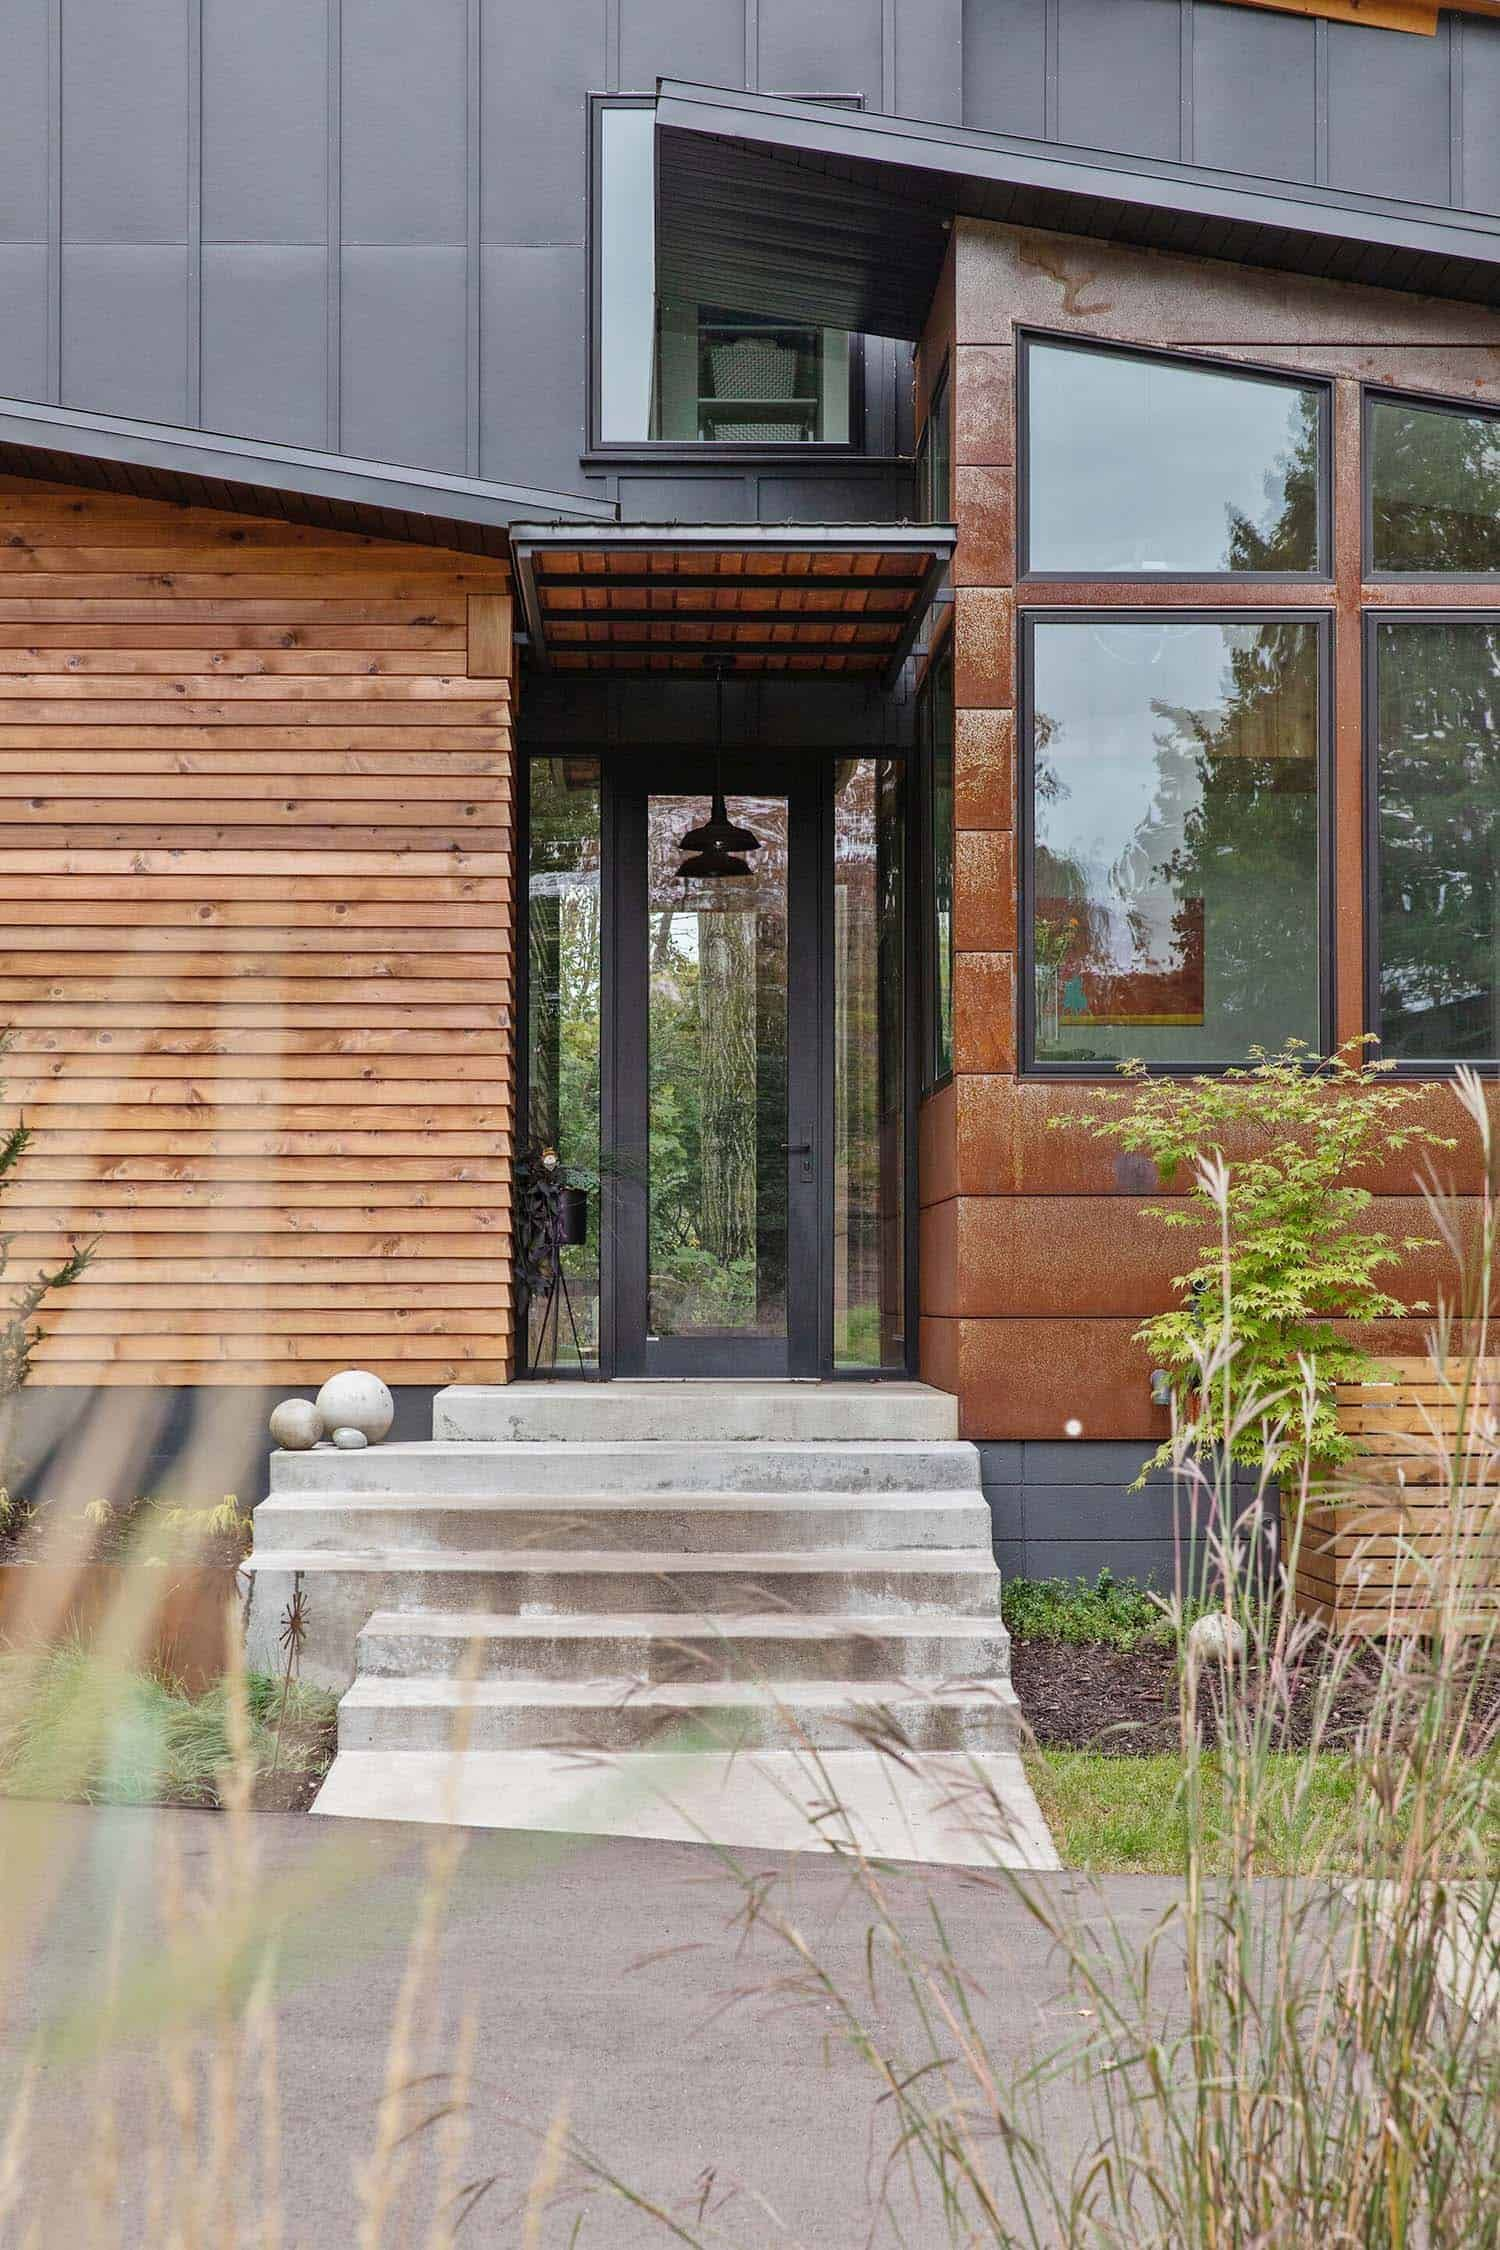 Spectacular Rustic Modern Dwelling With A Cantilevered Roof In Minnesota In 2020 Modern Lake House Modern Rustic Urban Farmhouse